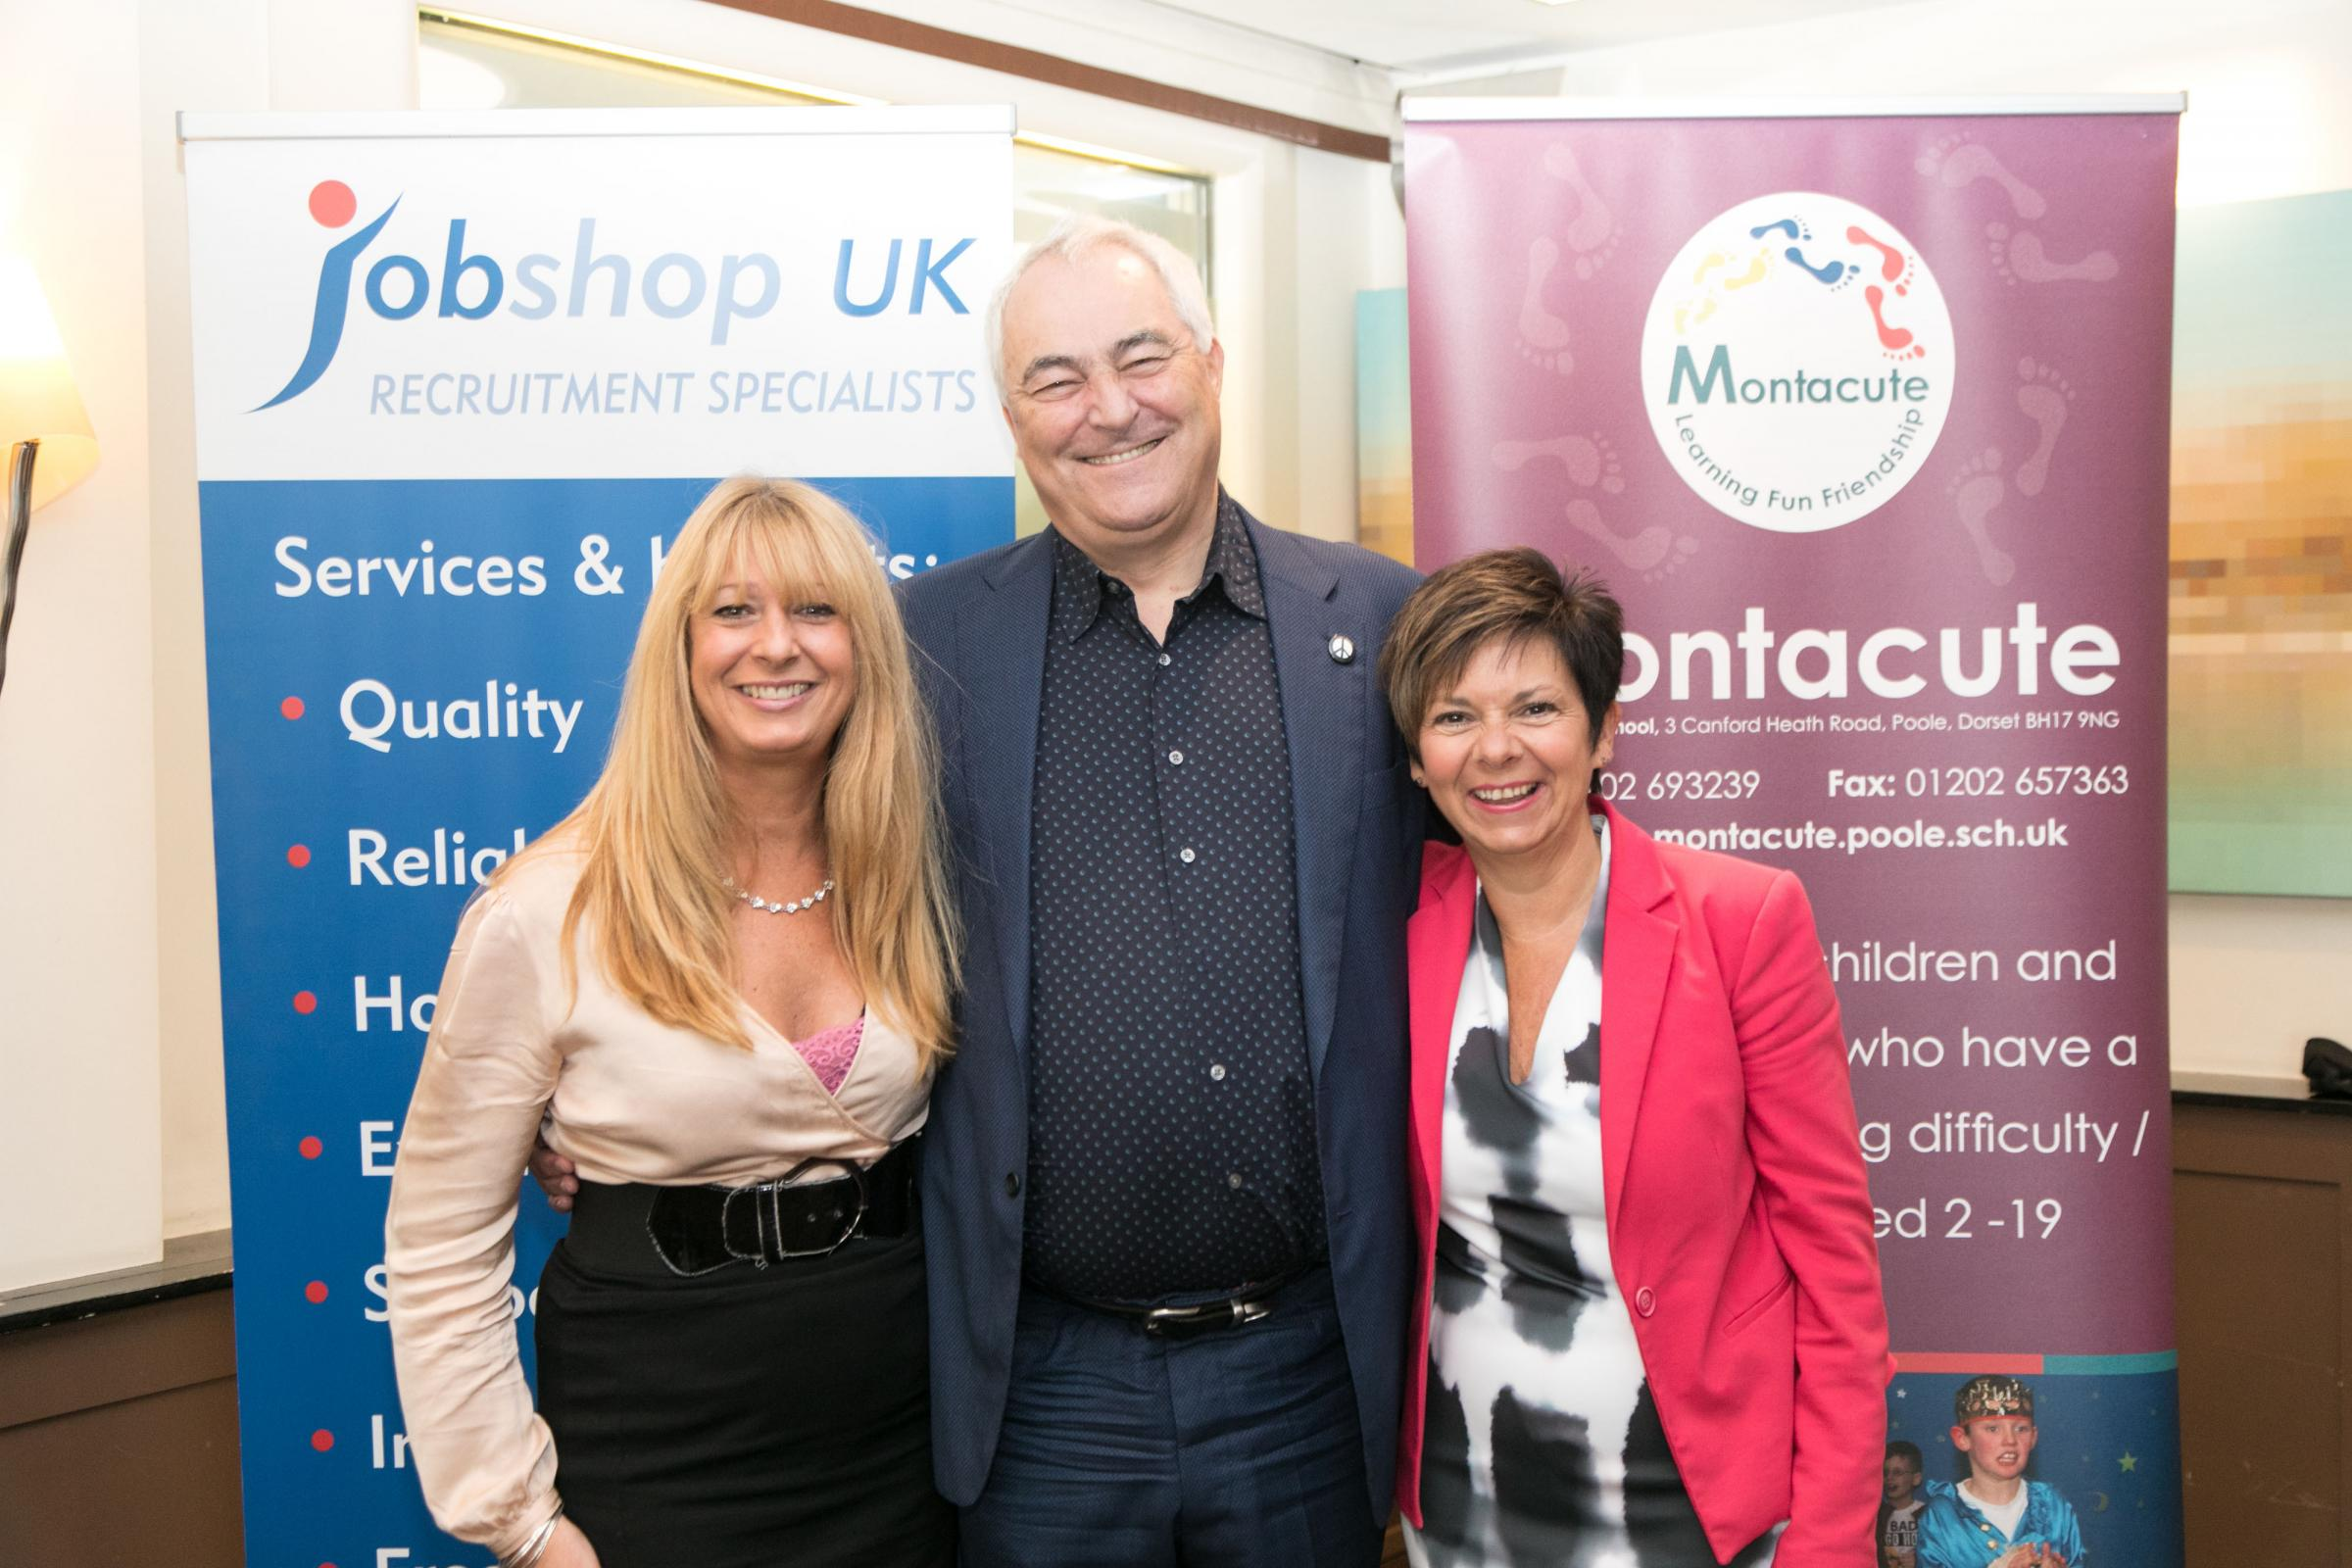 Mark Constantine of Lush with Frances Miles (left) and Tracey Wood of Jobshop UK